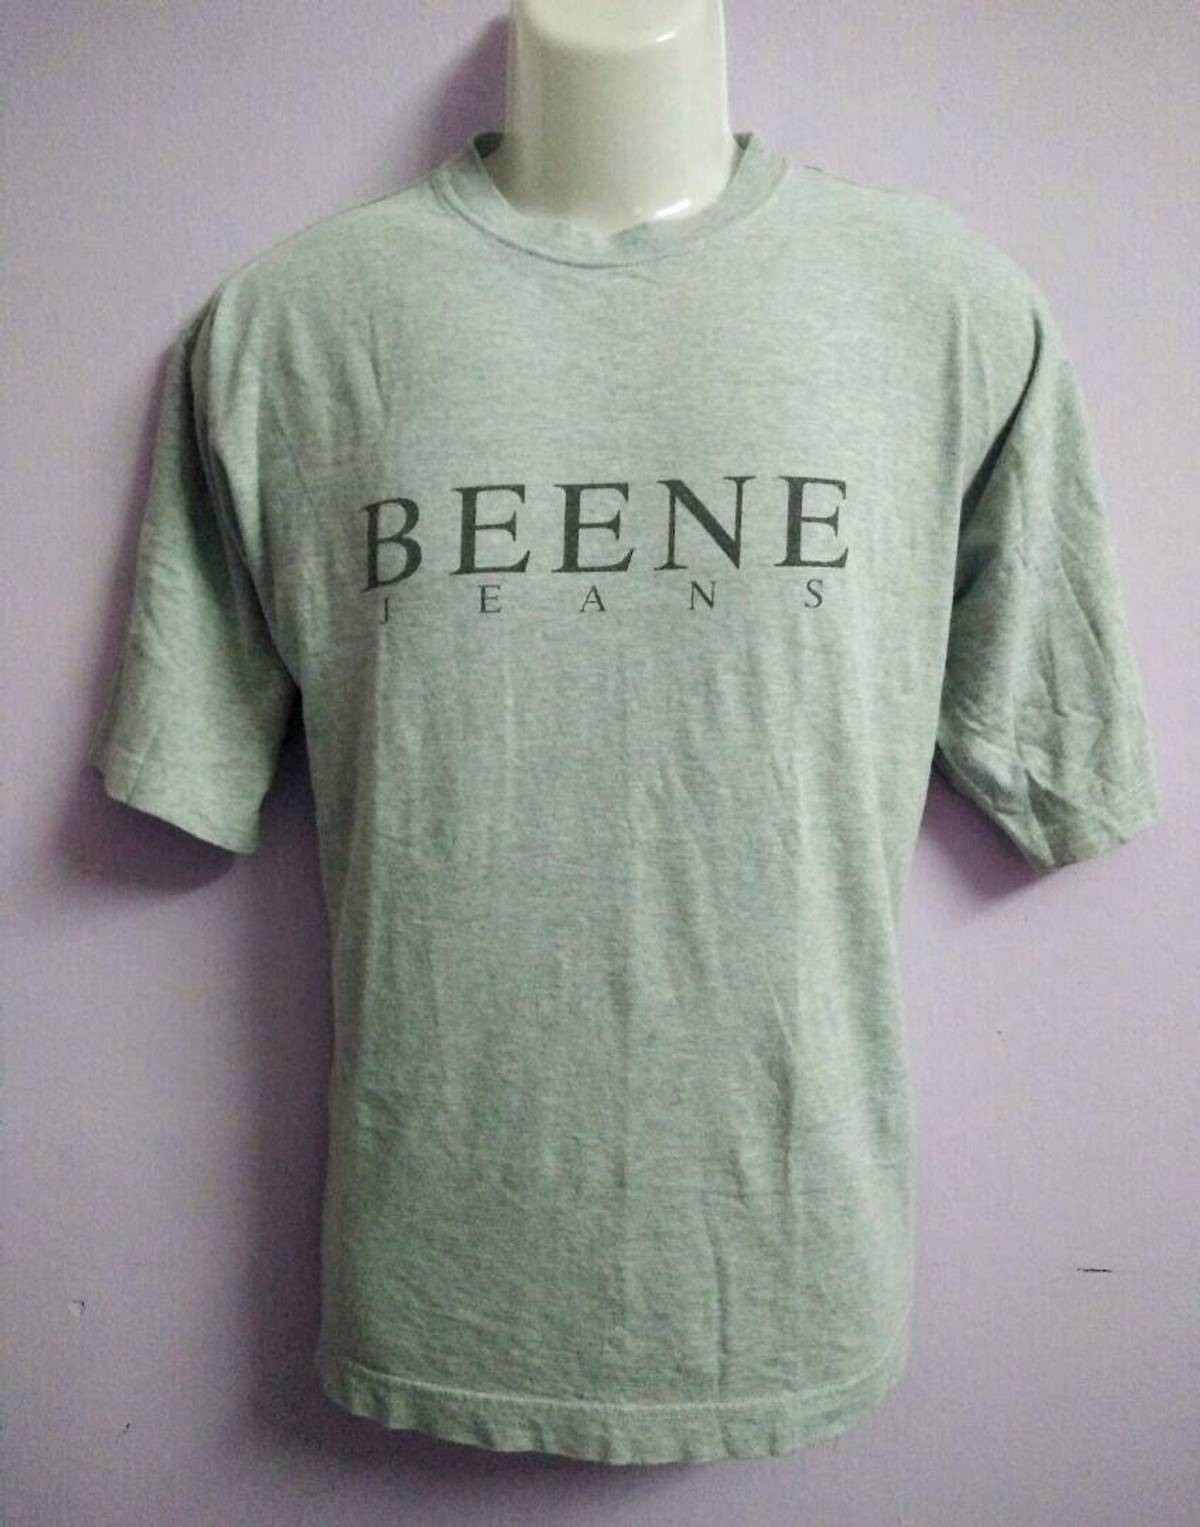 Geoffrey Beene Geoffrey Beene American Fashion Designer T Shirt Made In Israel Rare Spell Out Beene Jeans Most Iconic New York Fashion Designer Grailed